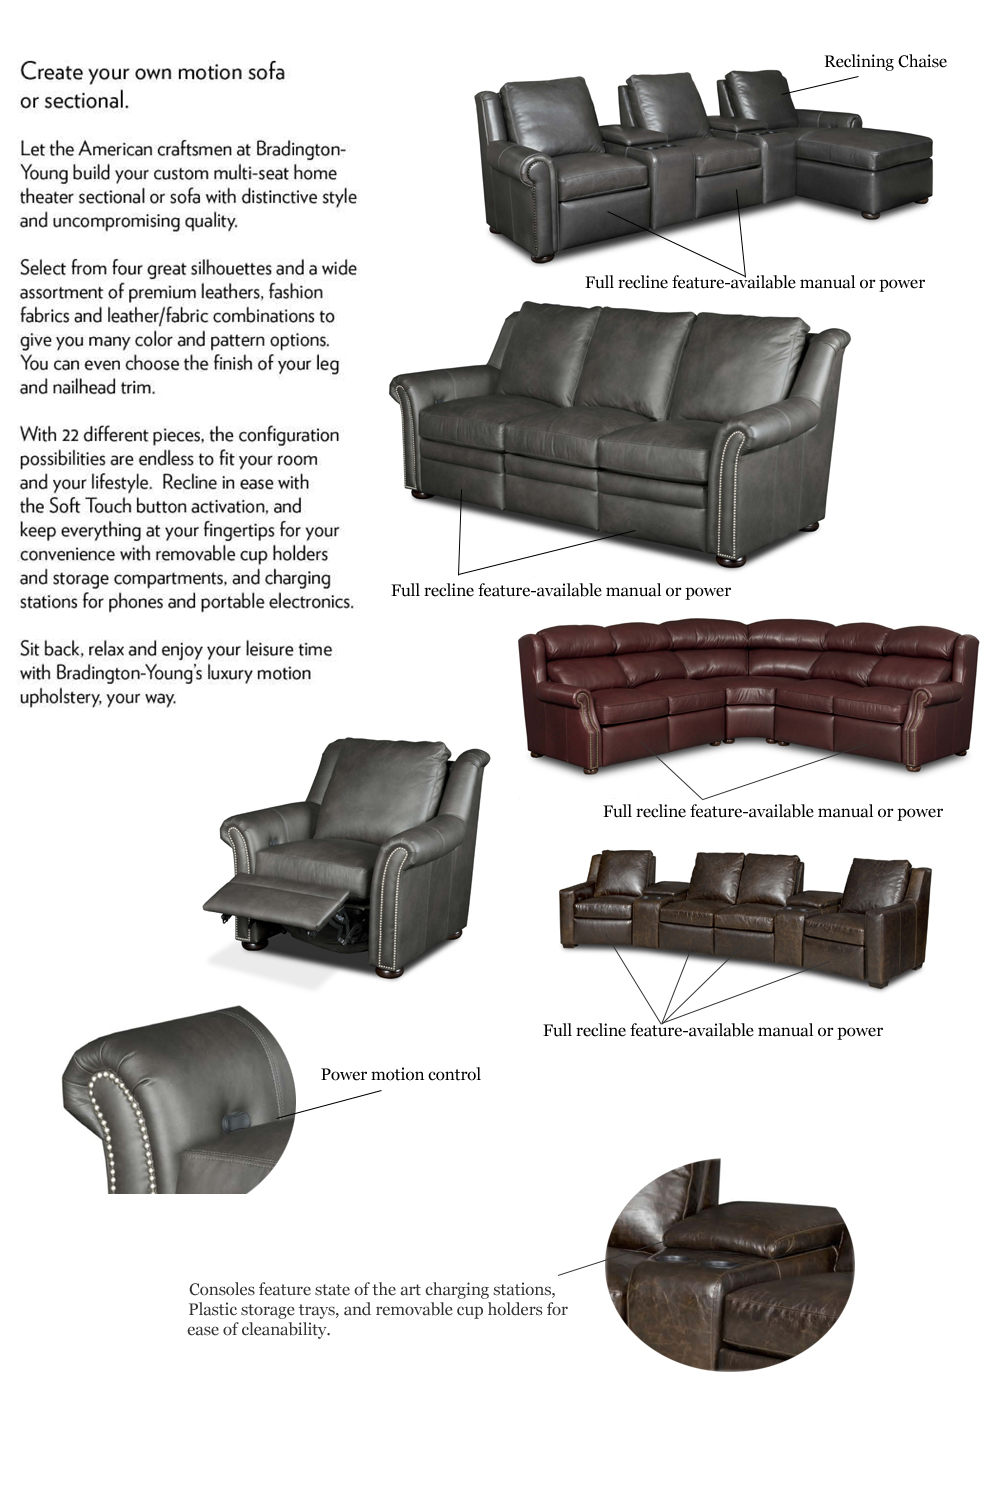 Lovely Bradington Young 900 Series Luxury Reclining Furniture Create Your Own  Motion Piece ...